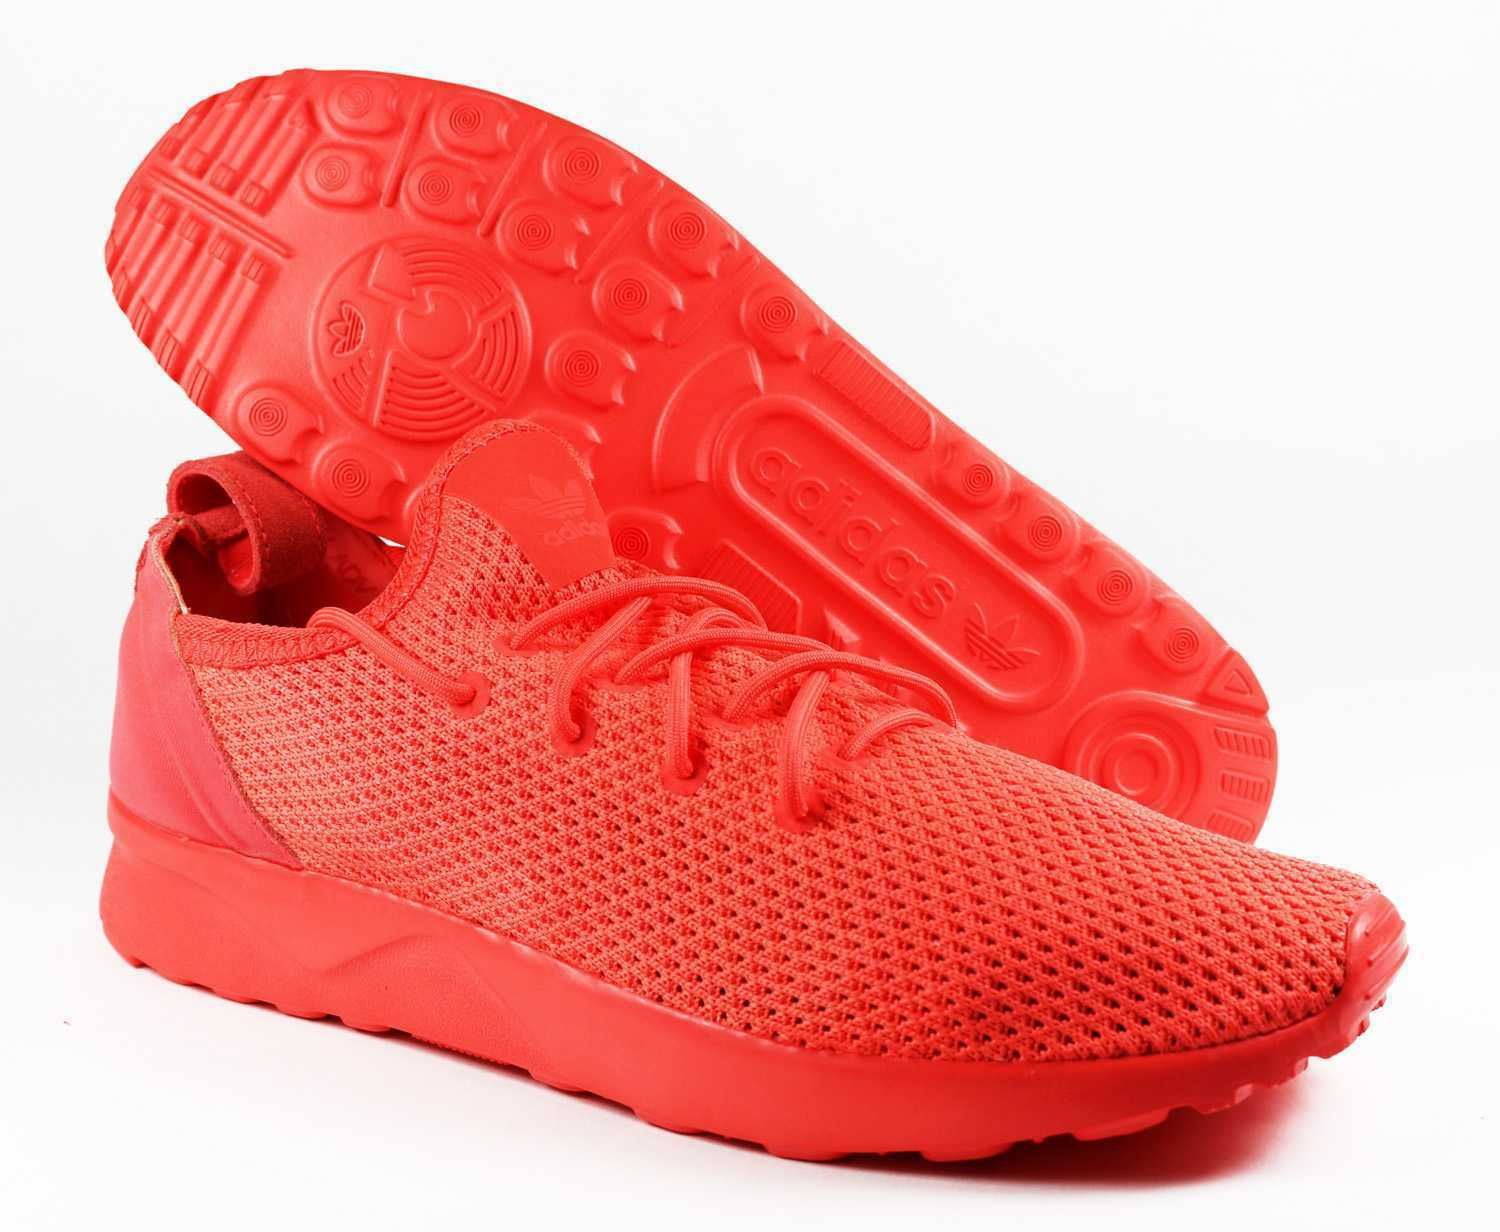 competitive price e4352 88f23 Adidas running shoes shoes shoes ZX Flux ADV virtue Sock W bb2118 zx750 850  Coral 5bb420